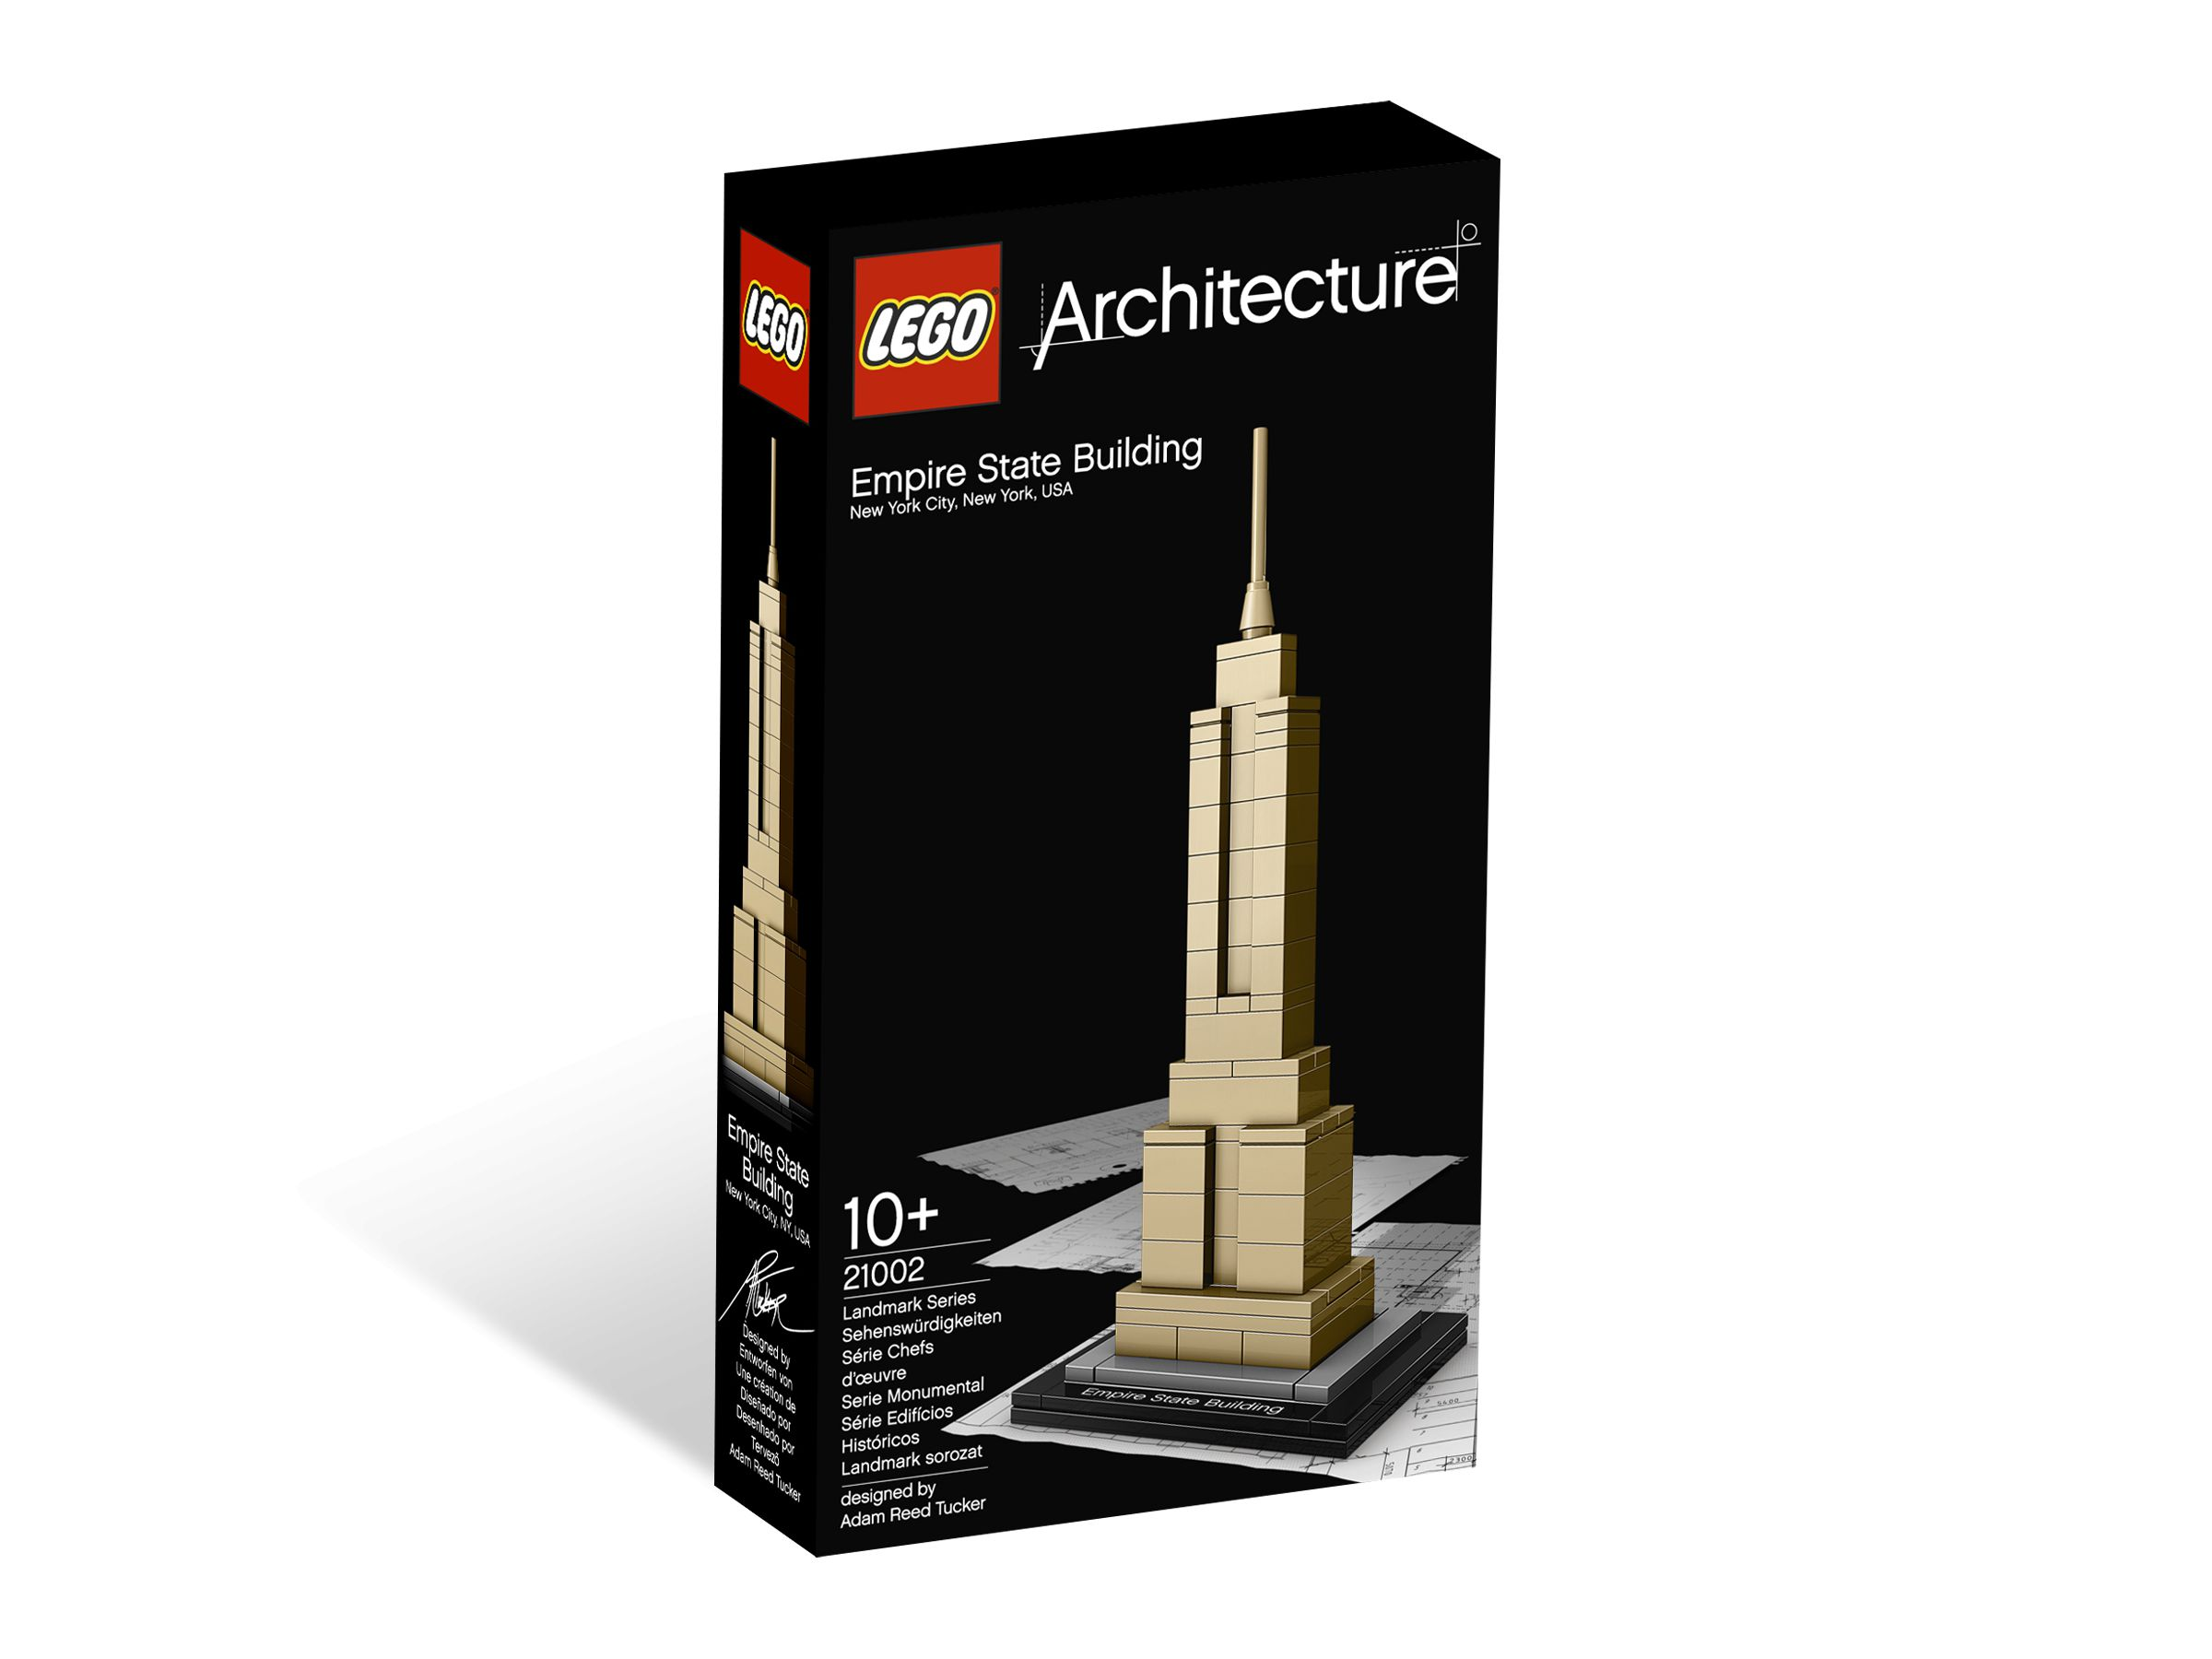 LEGO Architecture 21002 Empire State Building LEGO_21002_alt1.jpg